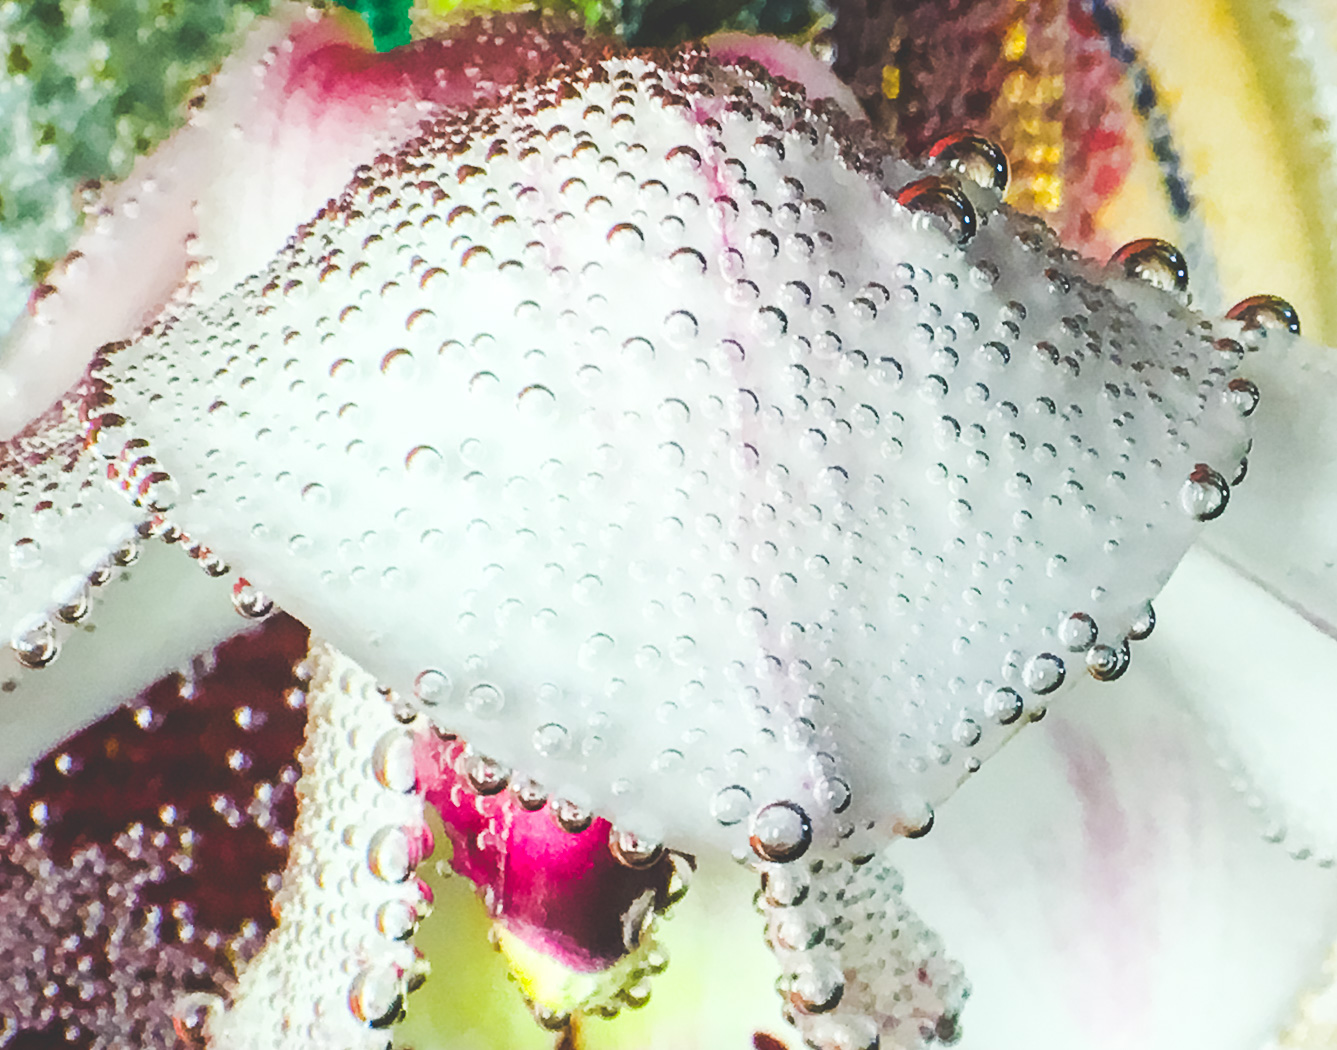 hedy bach images - flowers and bubbles - 4